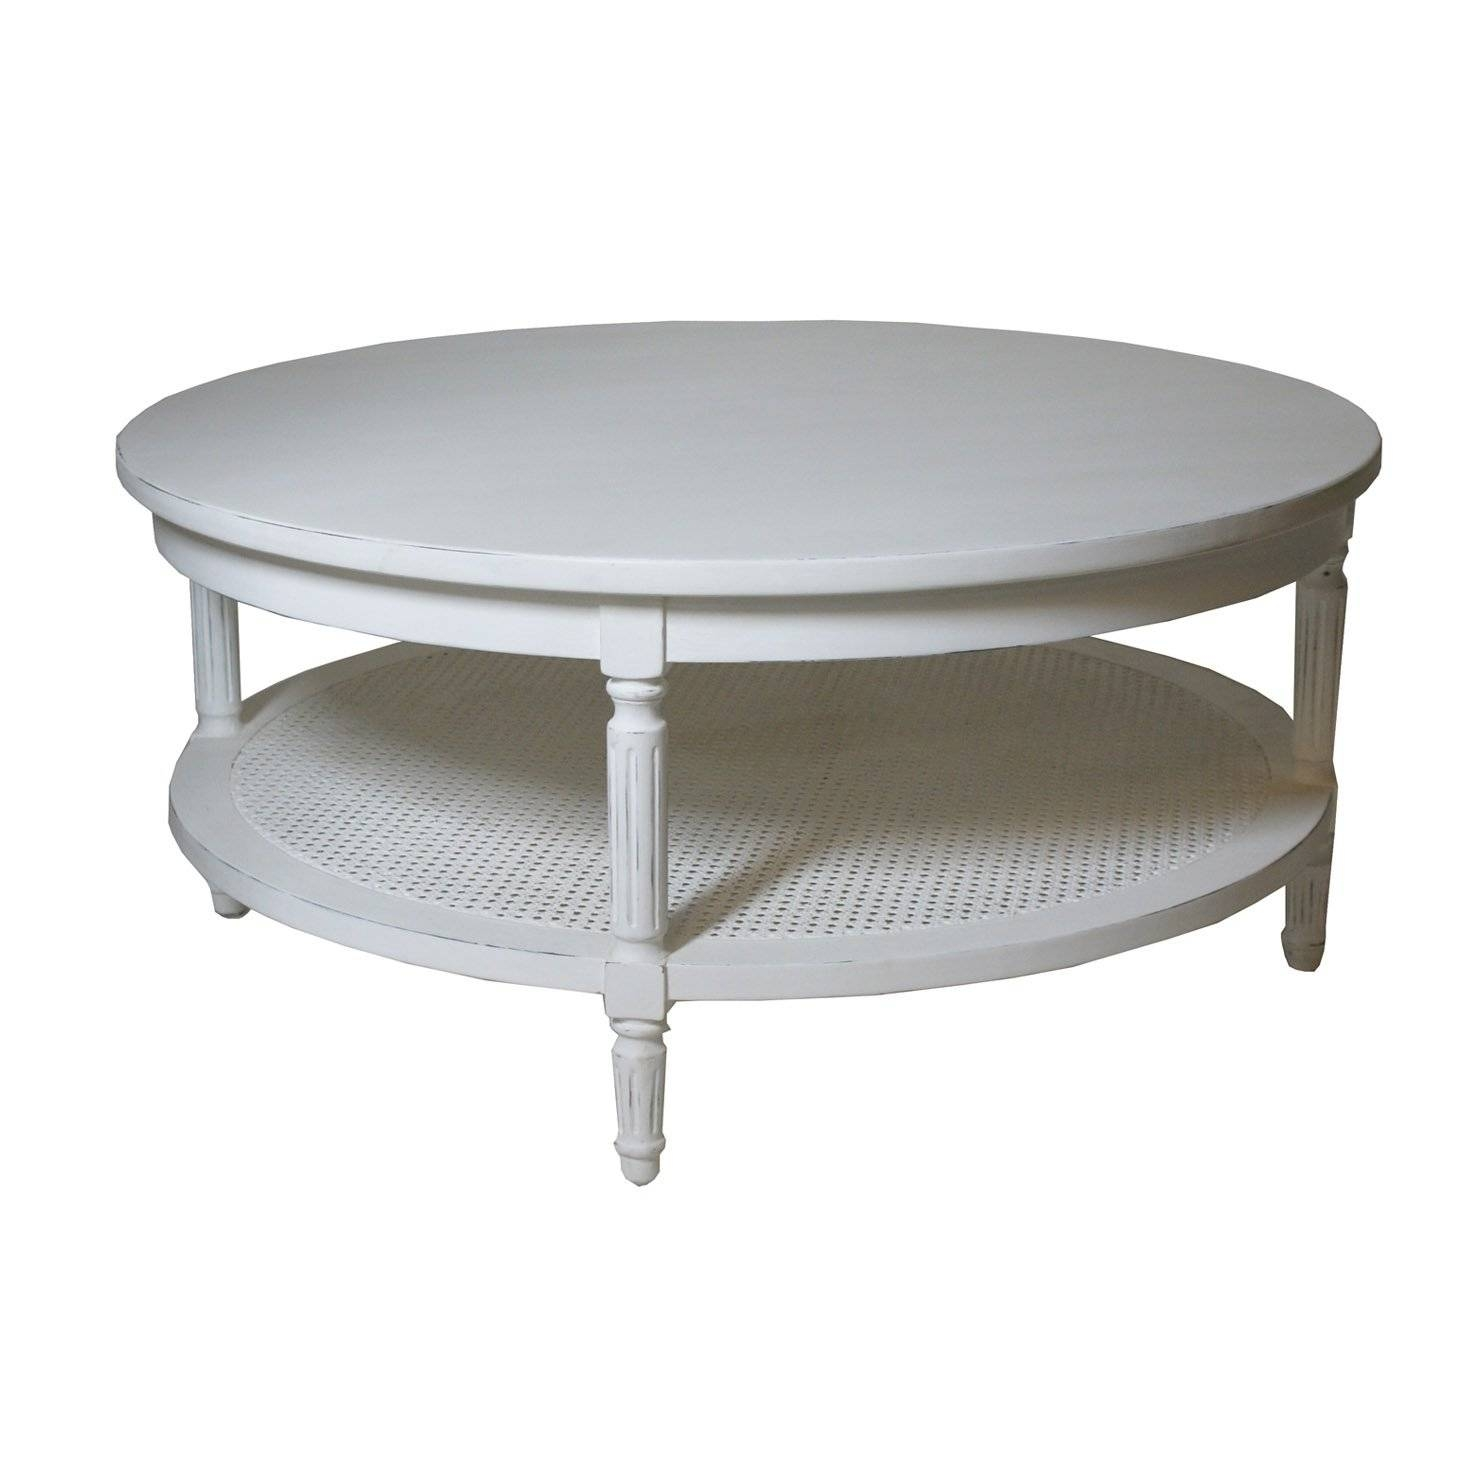 Round White Coffee Table Modern With Shelves And Storage Also for Coffee Tables With Shelves (Image 28 of 30)